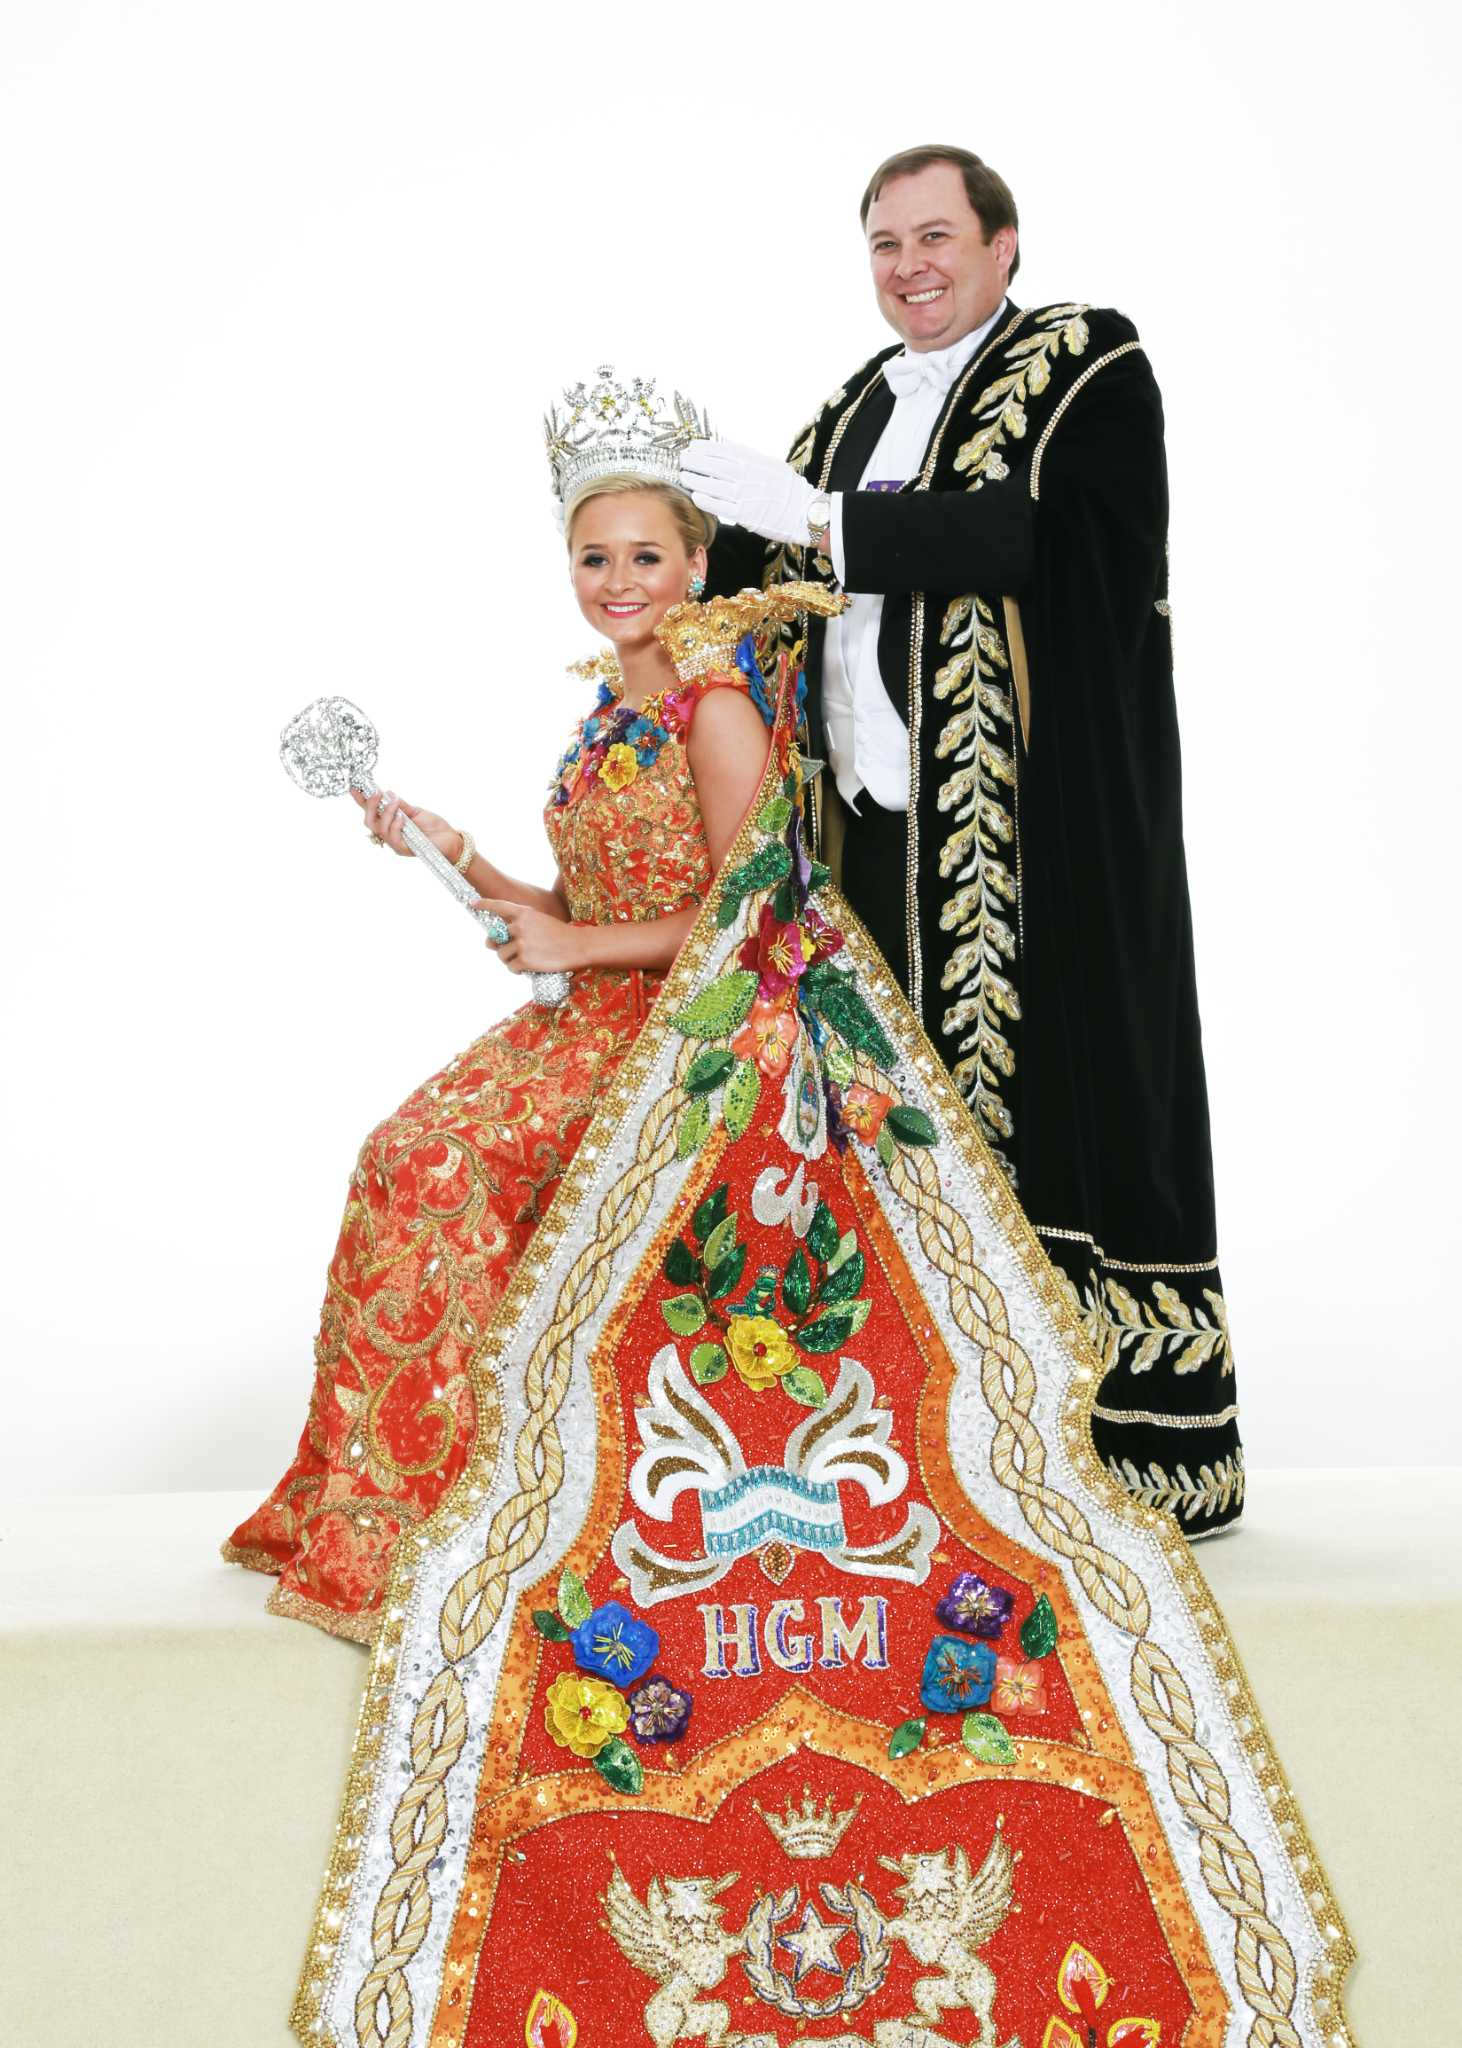 The Jaw Dropping Gowns Of The 2017 Coronation Court San